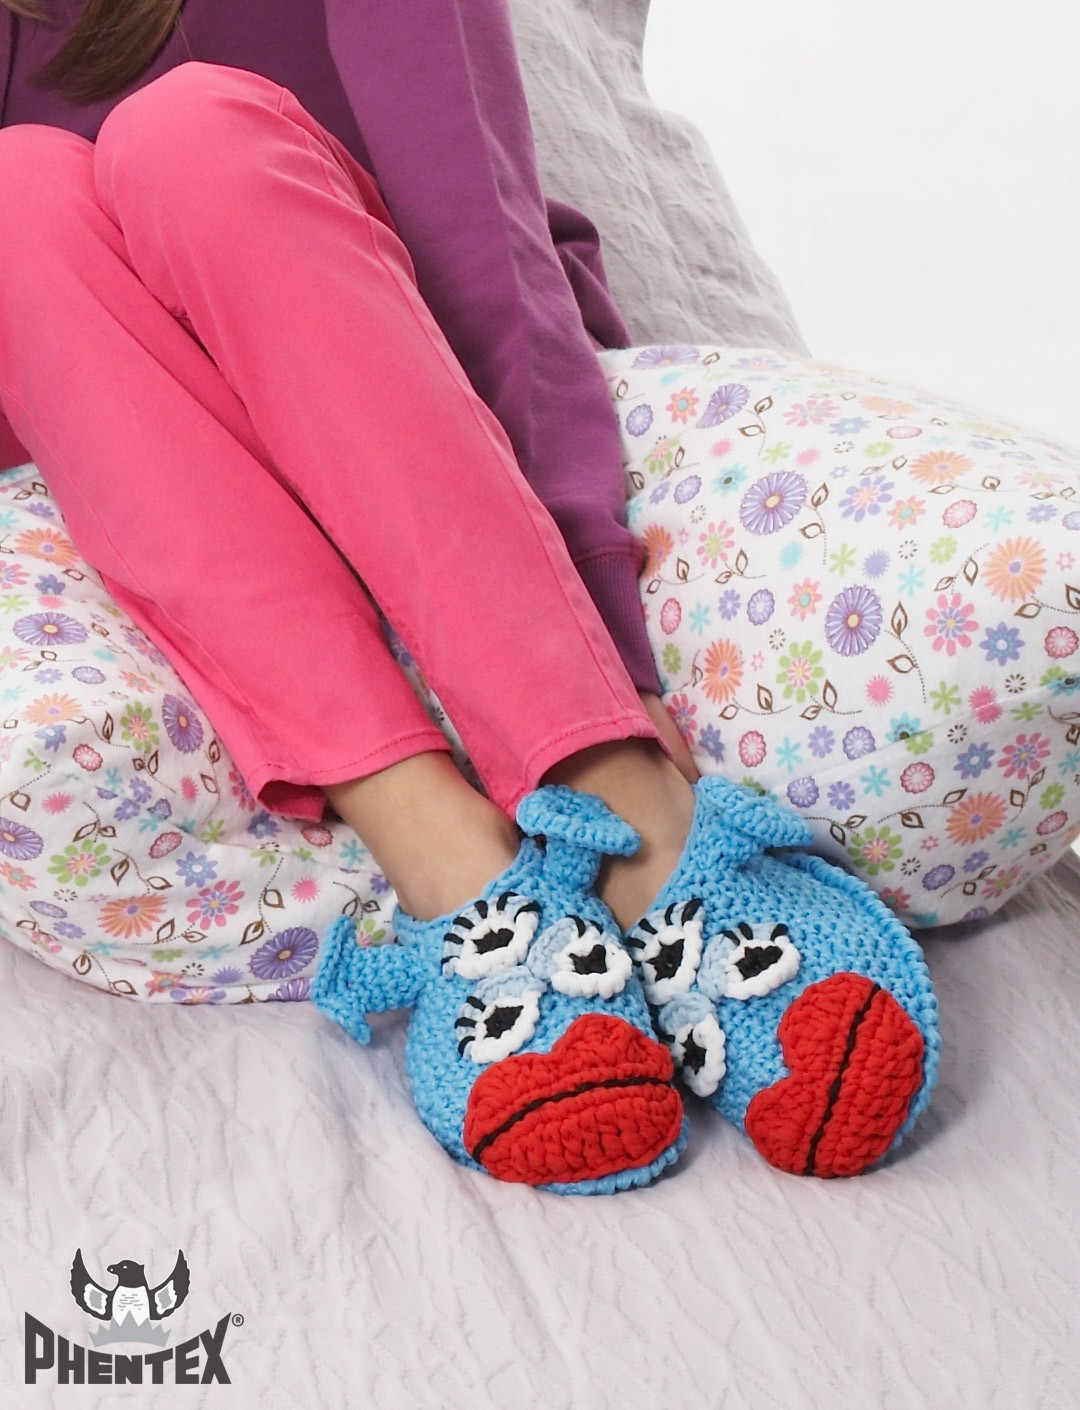 Free Crochet Pattern For Monster Slippers : Phentex Blue Meanie Monster Slippers, Crochet Pattern ...